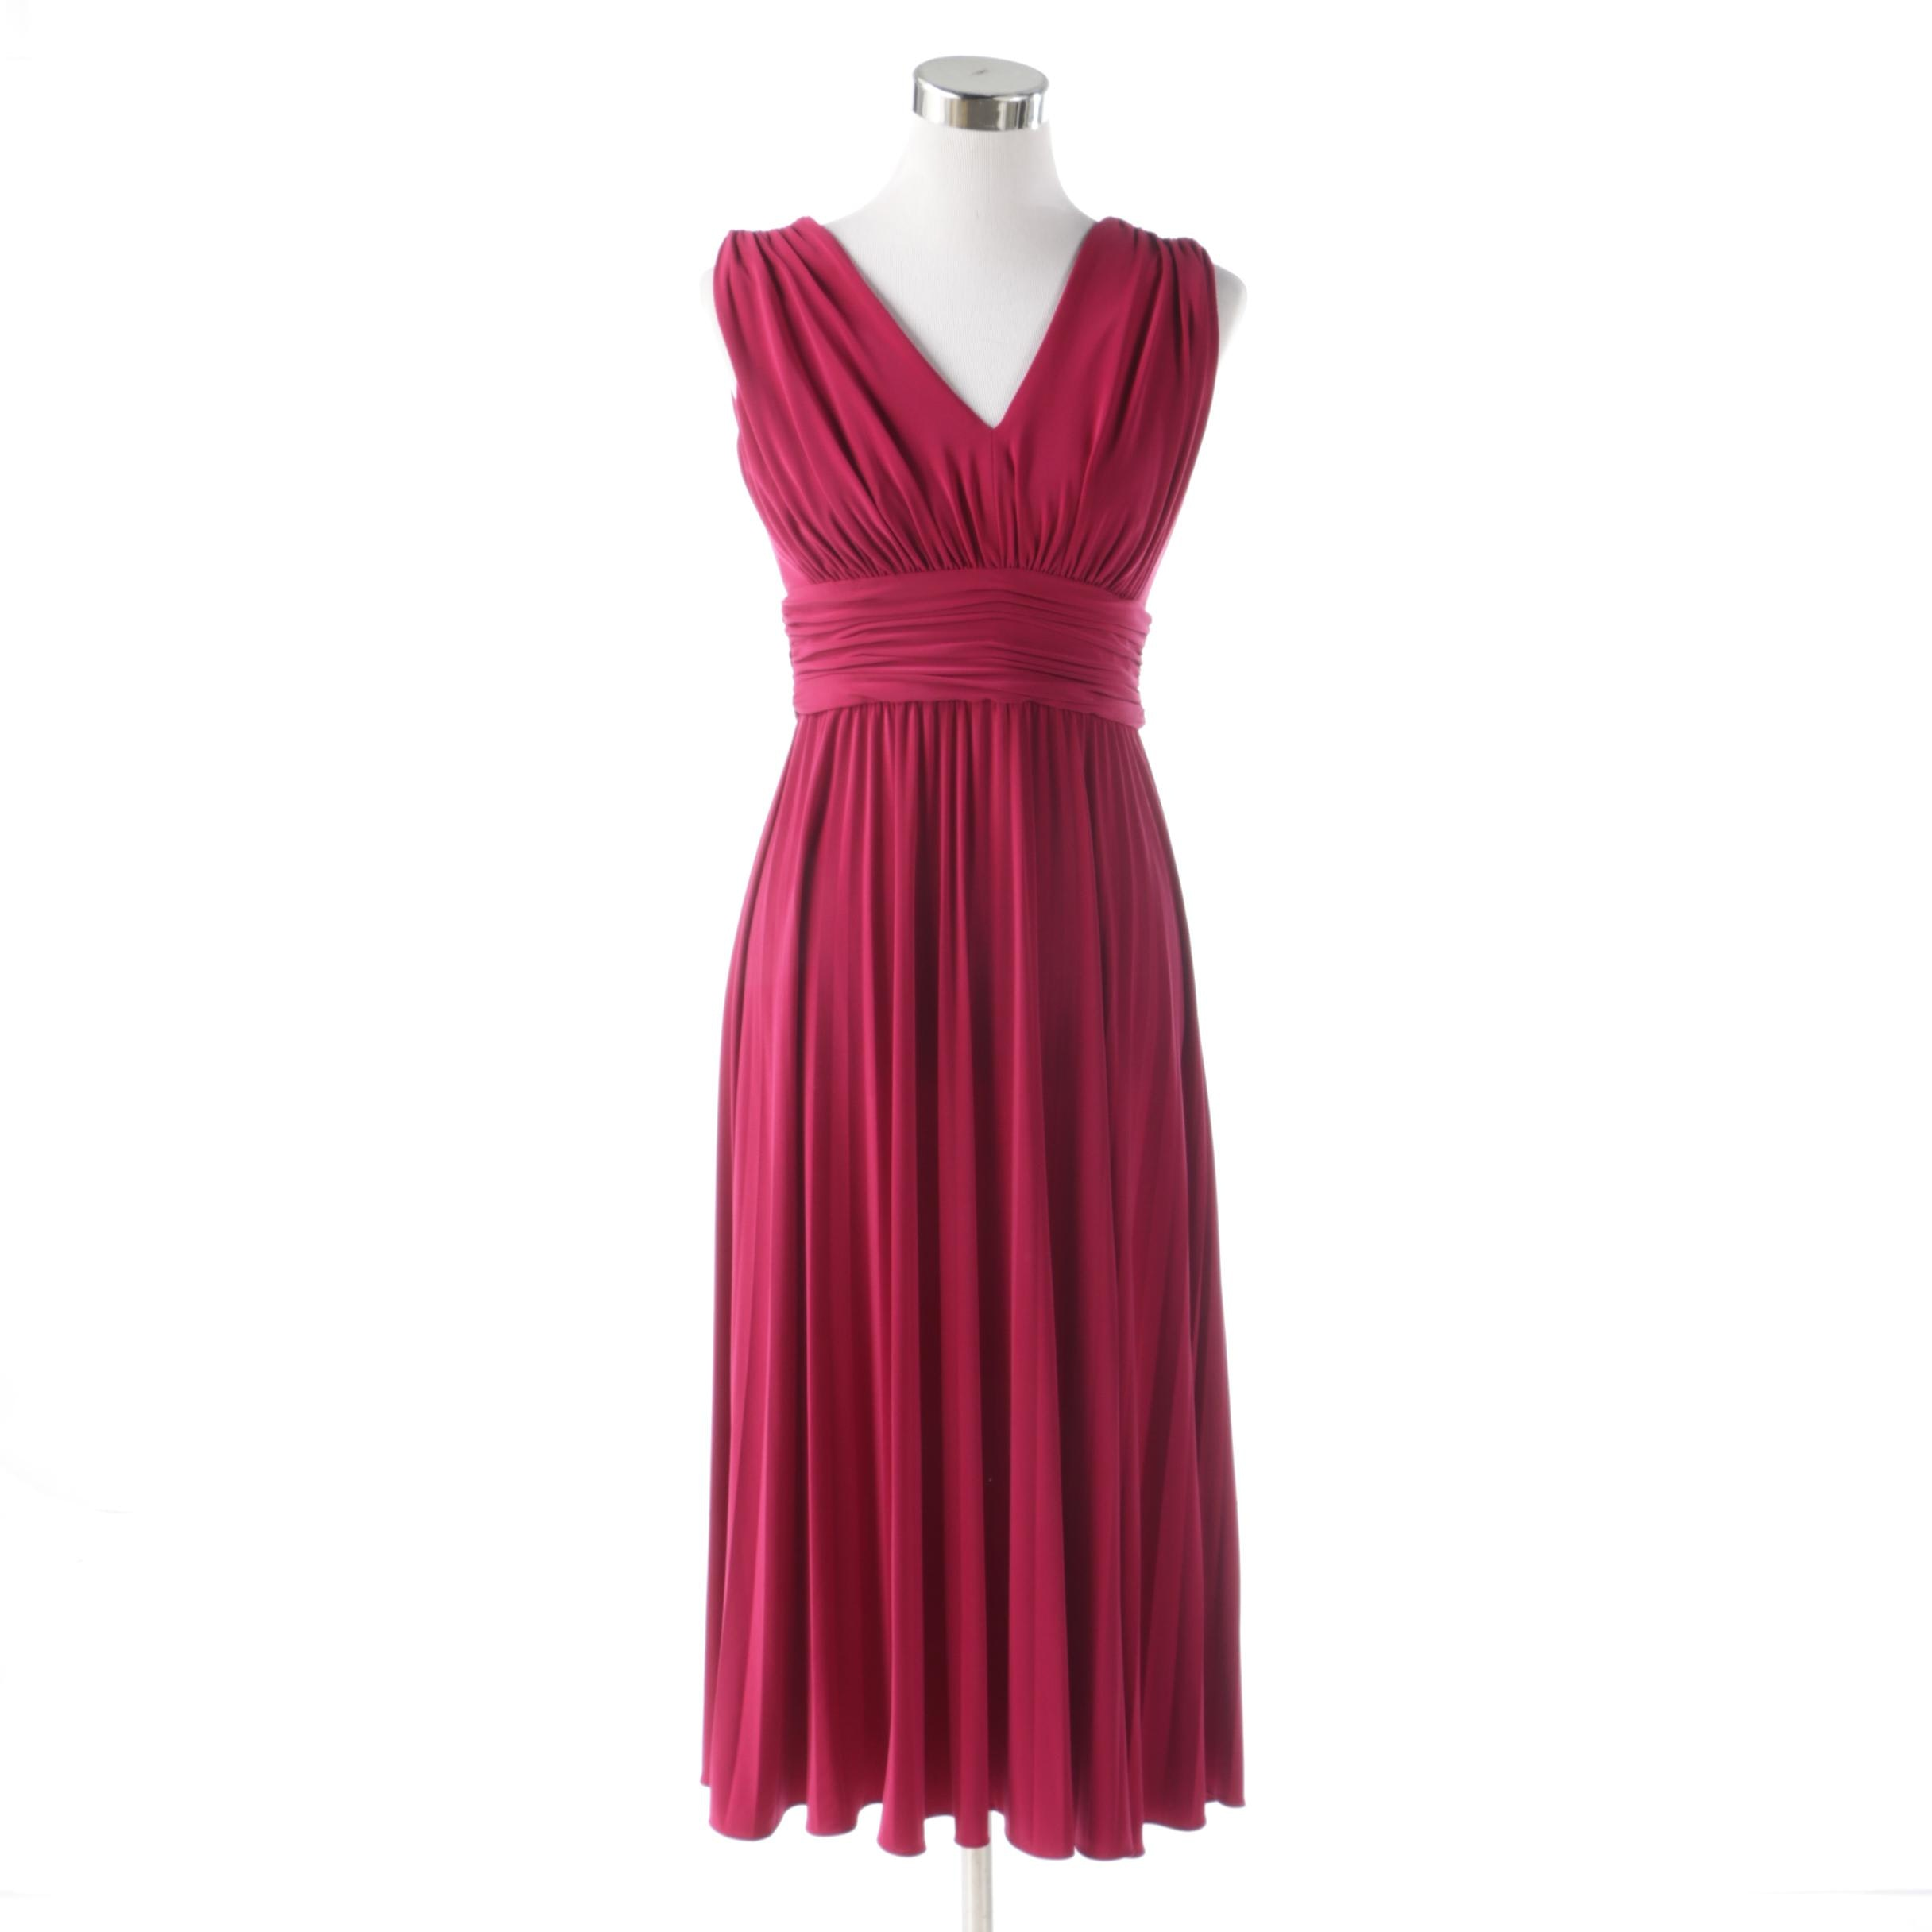 Suzi Chin for Maggy Boutique Magenta Sleeveless Cocktail Dress with Ruching